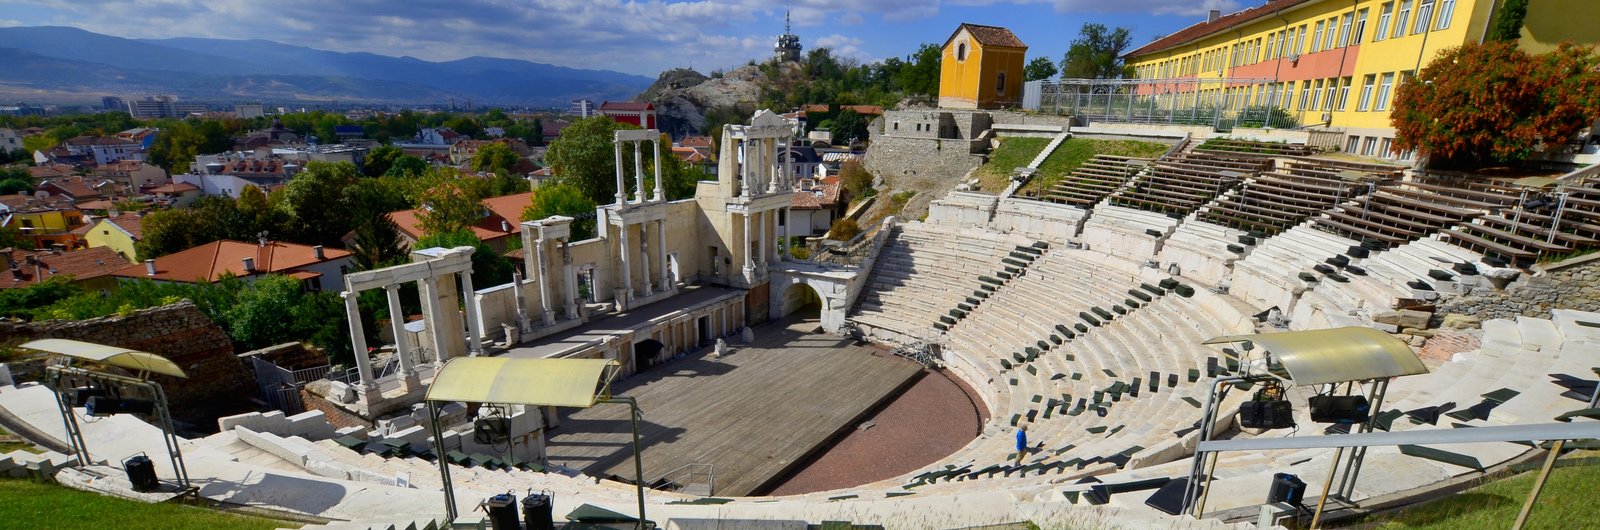 plovdiv city header